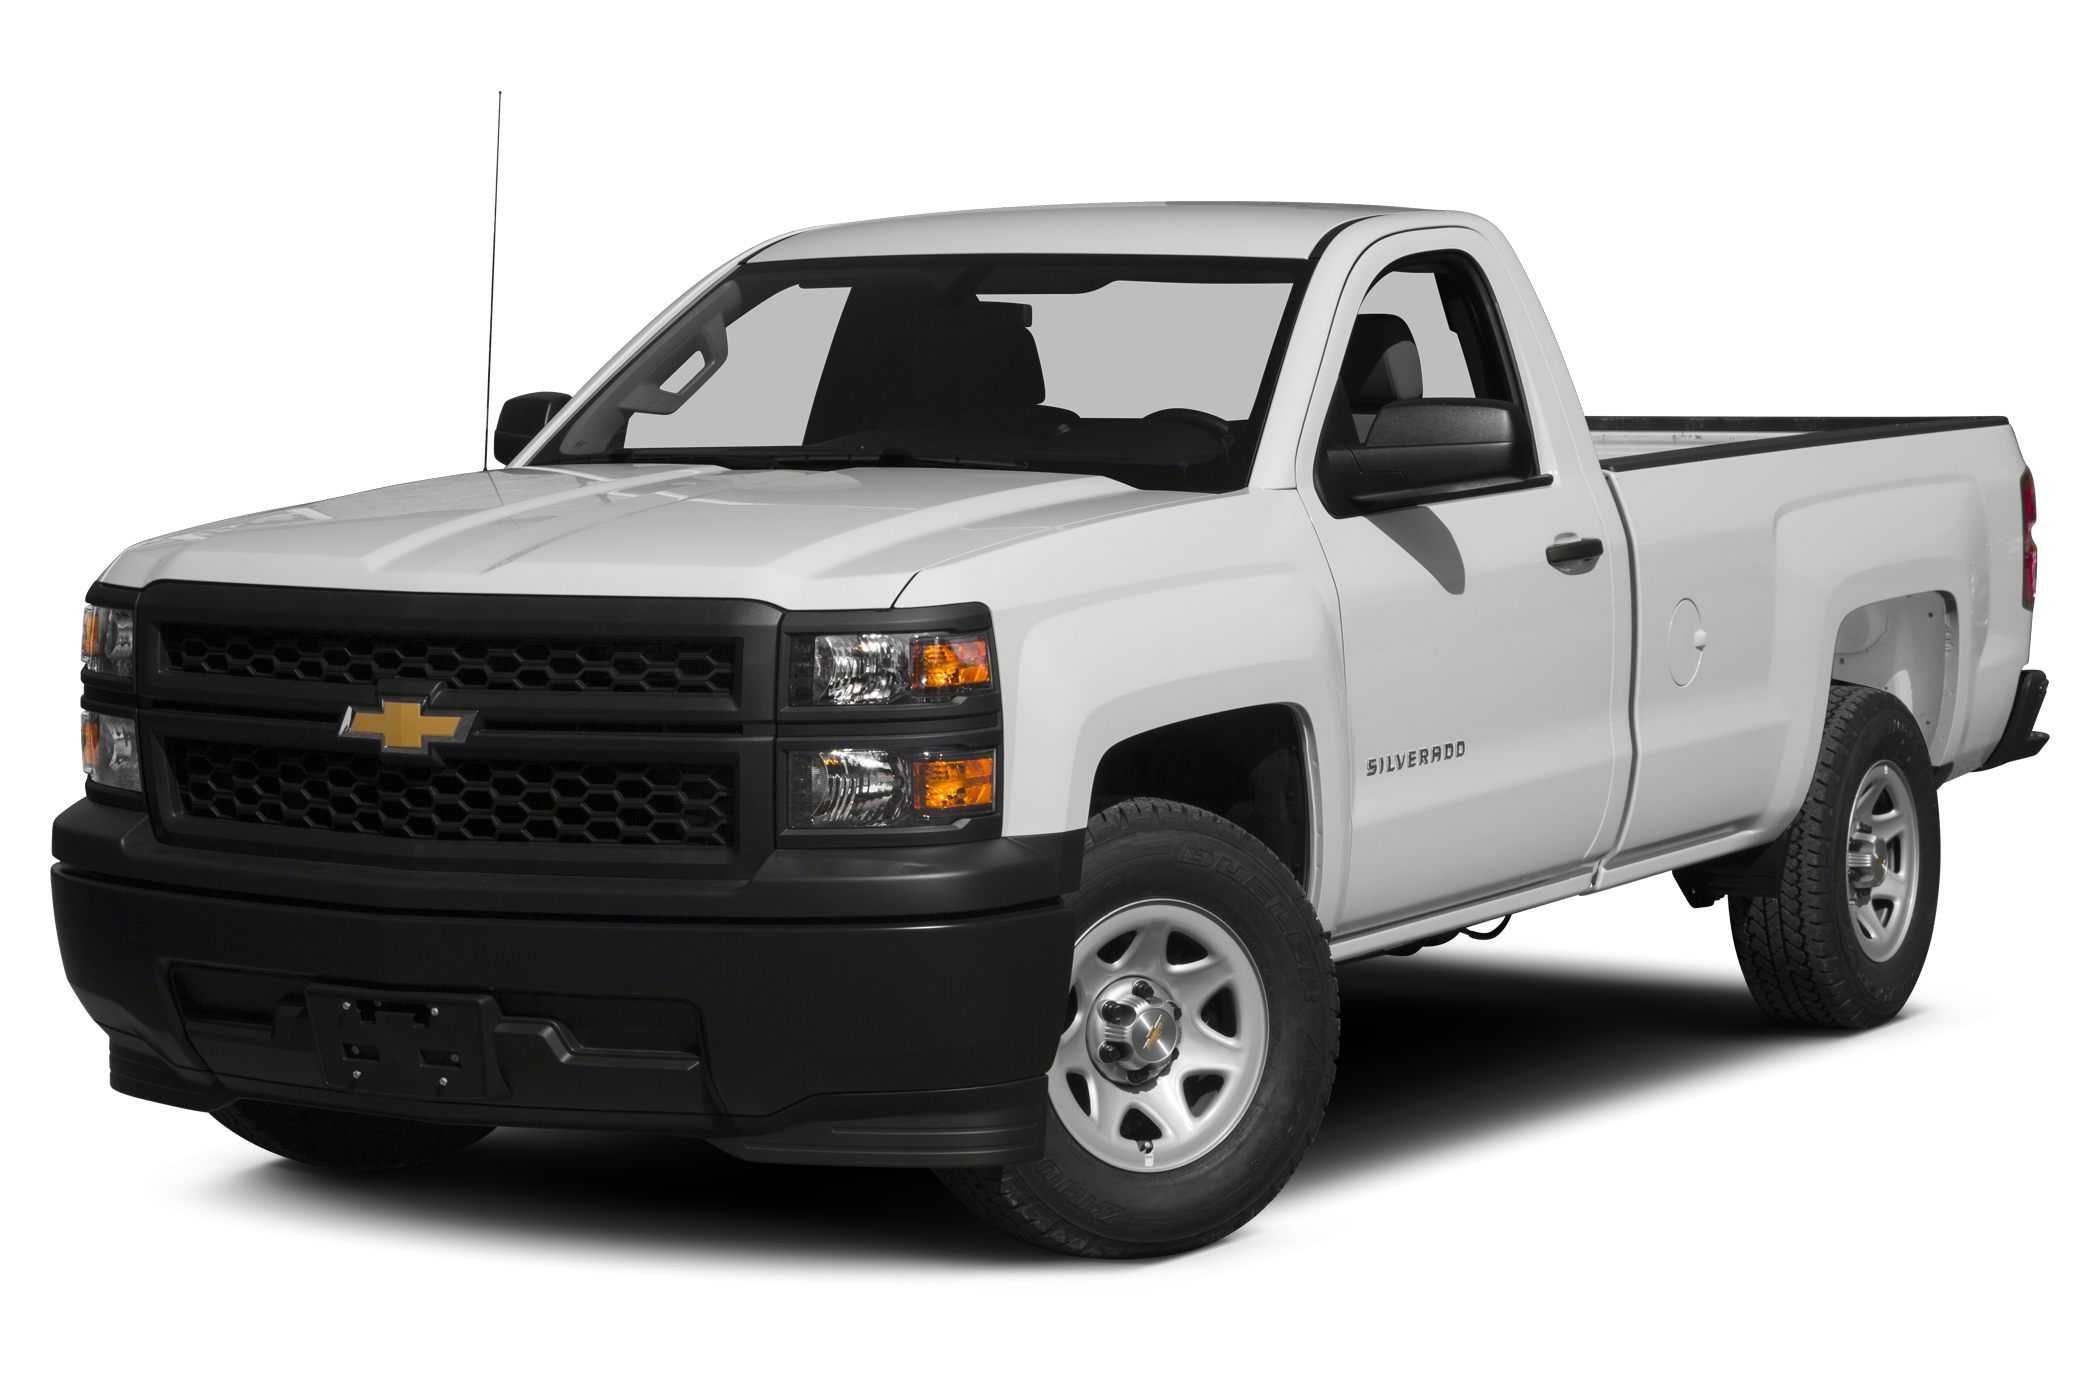 2015 Chevrolet Silverado 1500 1LT Extended Cab Pickup for sale in Clintonville for $36,676 with 112 miles.